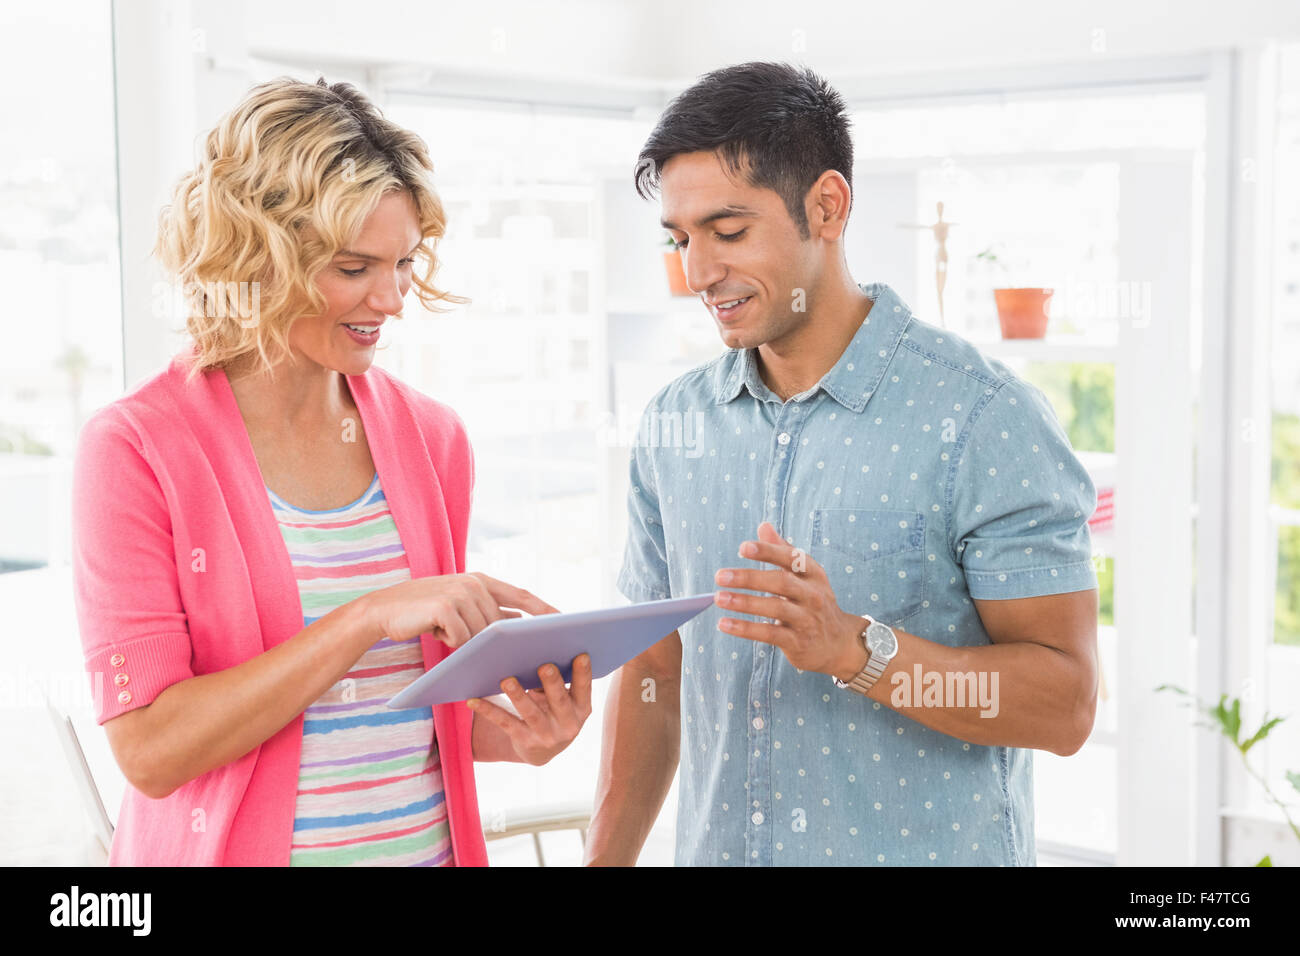 Colleagues standing and using tablet computer together Stock Photo